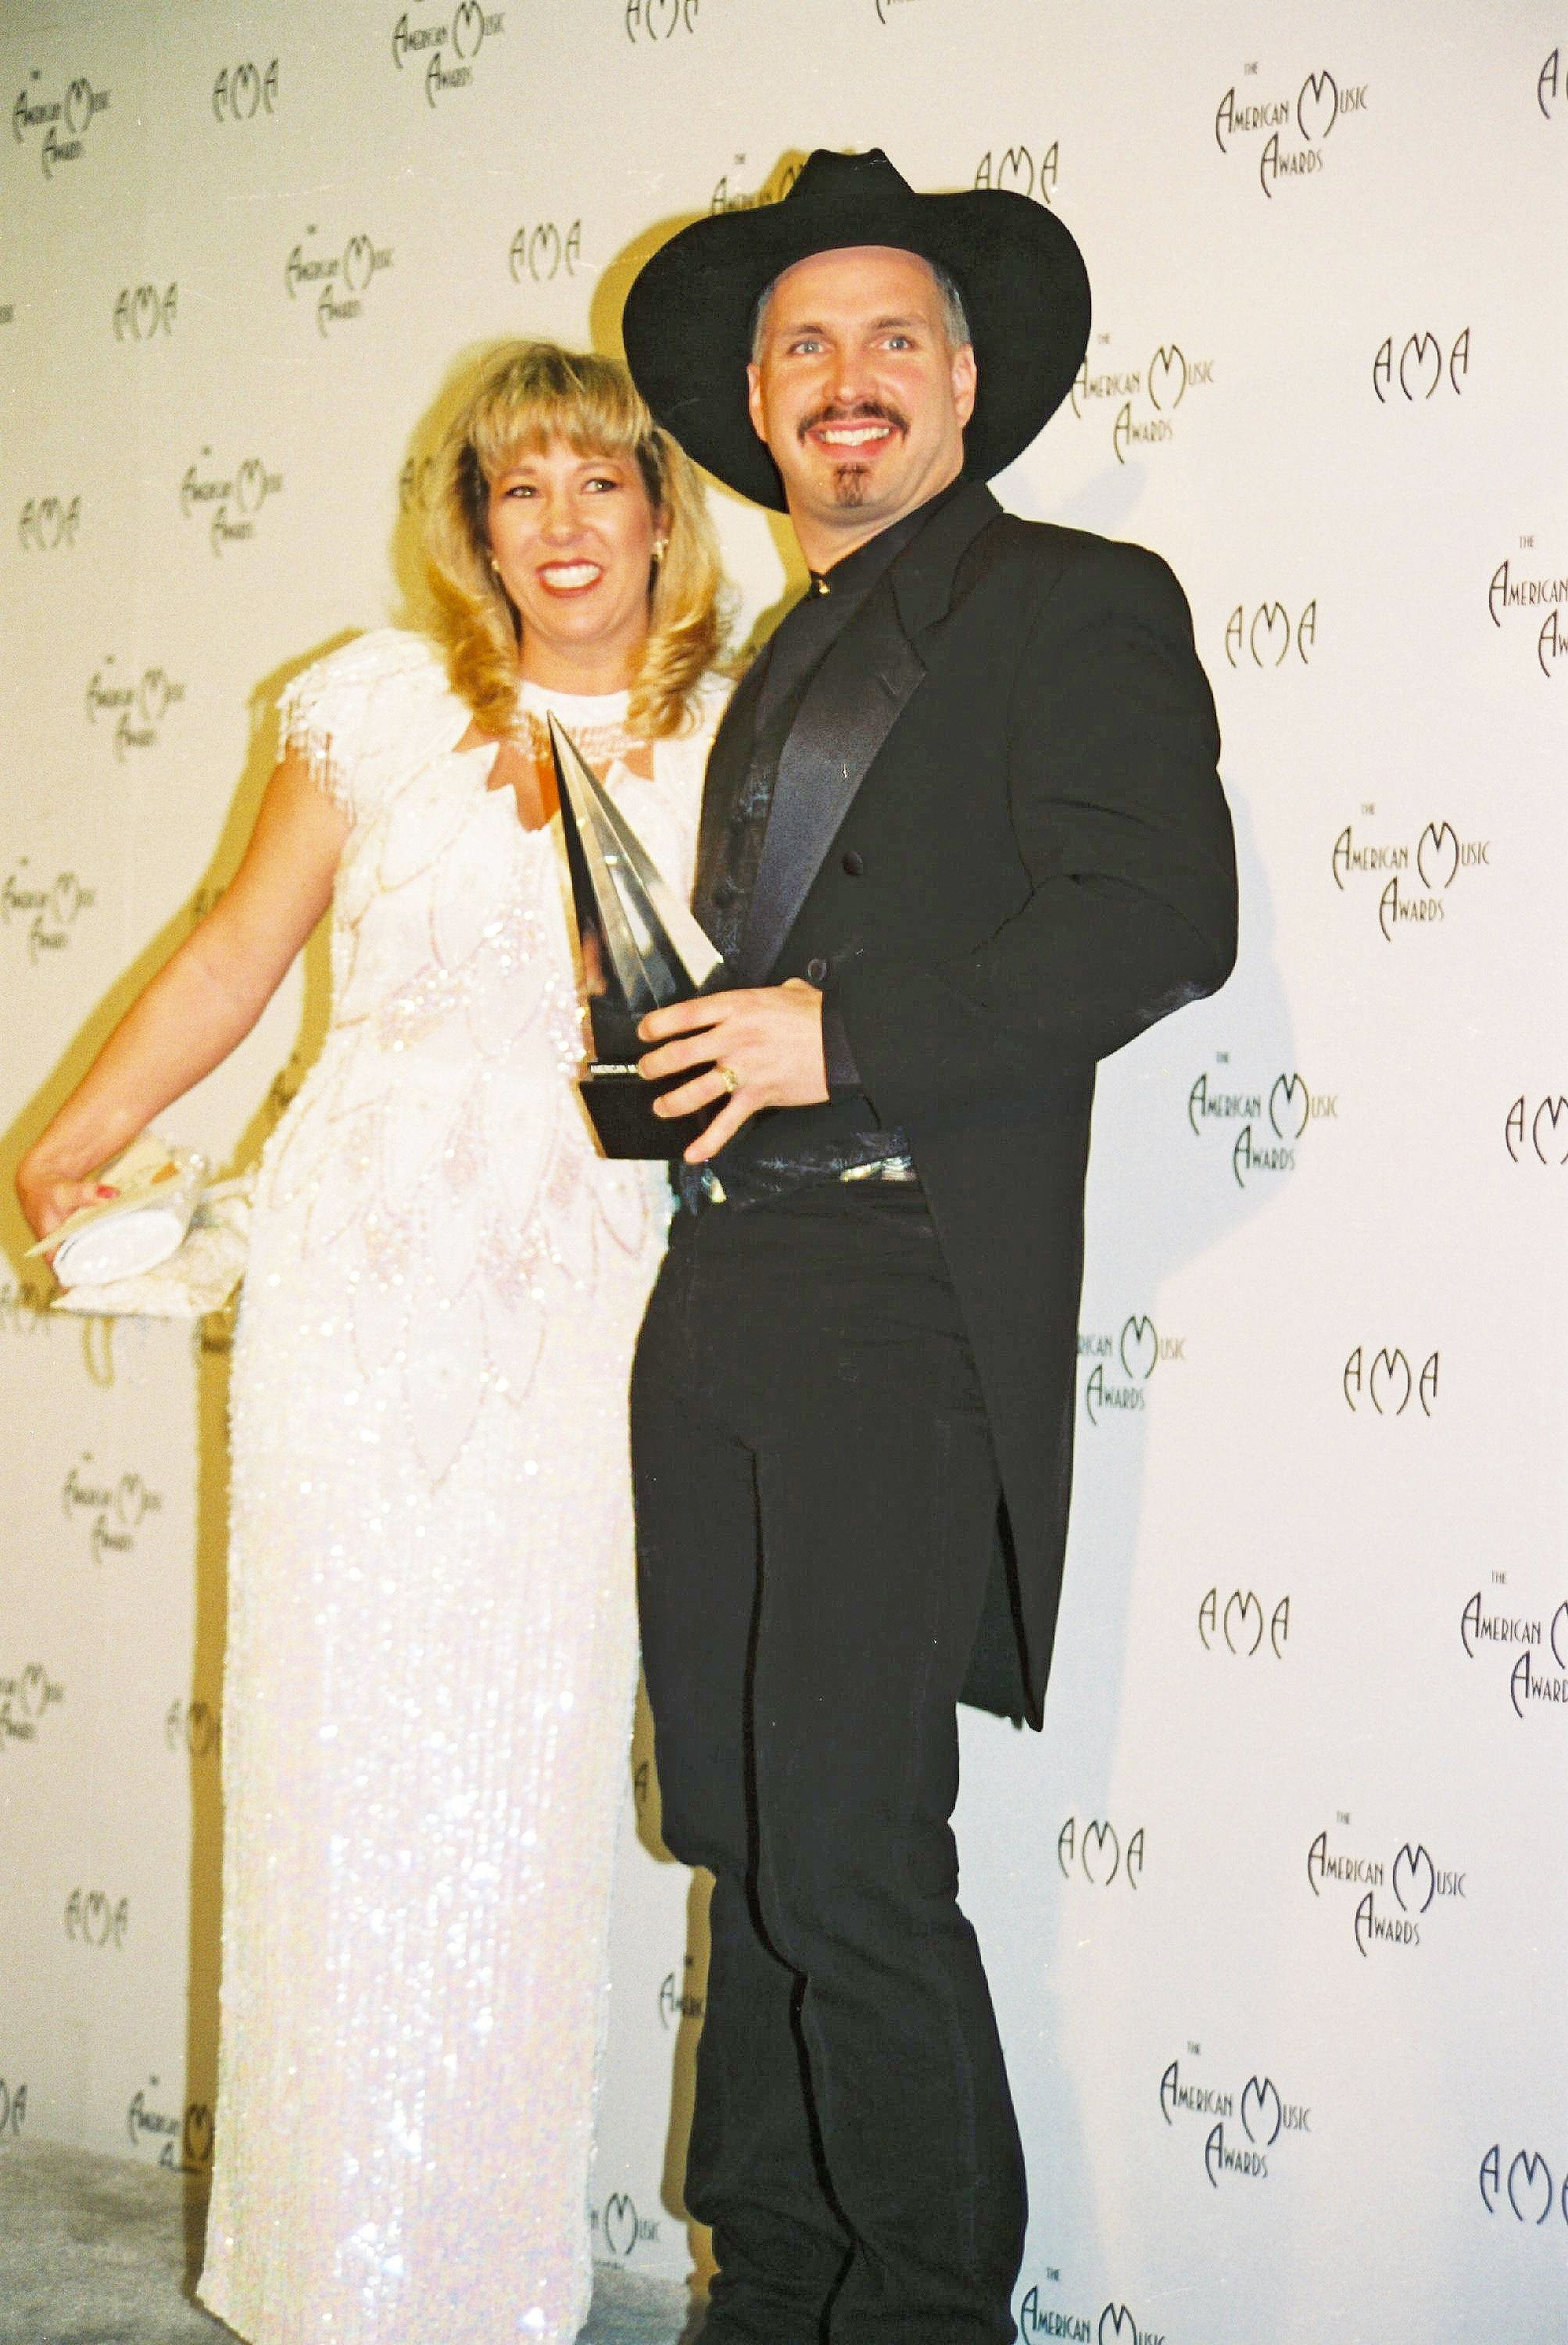 11. Garth Brooks and Sandy Mahl | Country Music Videos